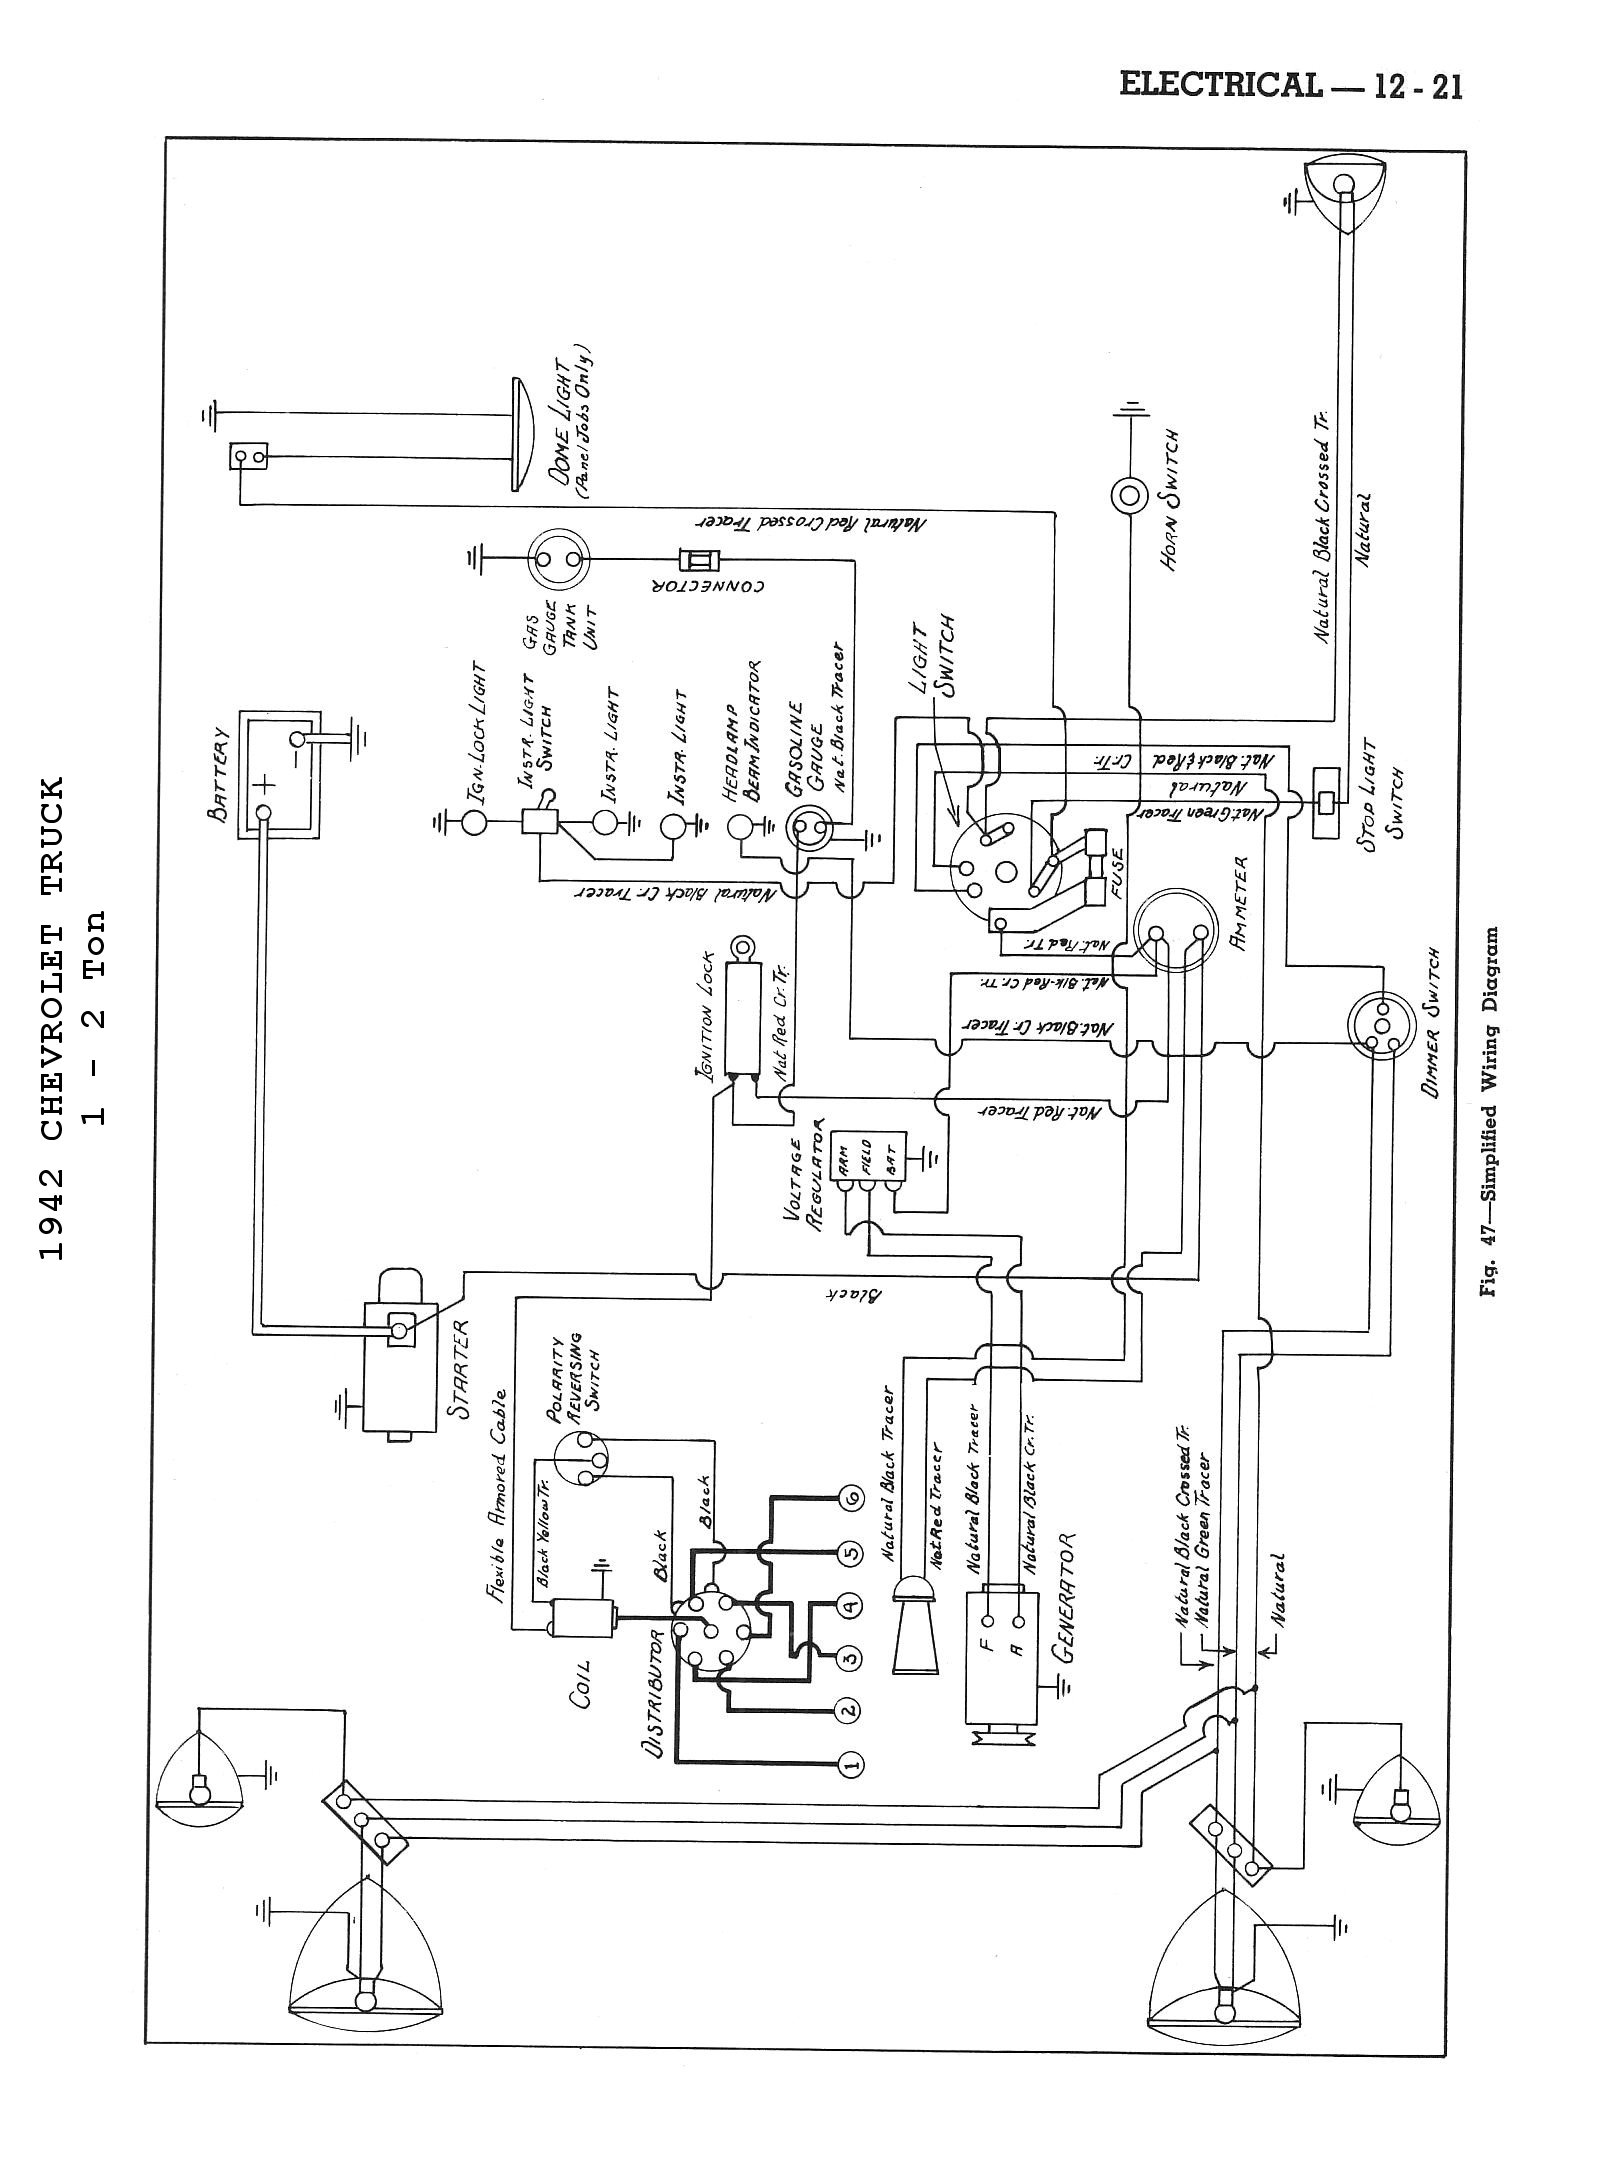 Wiring on 1959 chevy impala wiring diagram